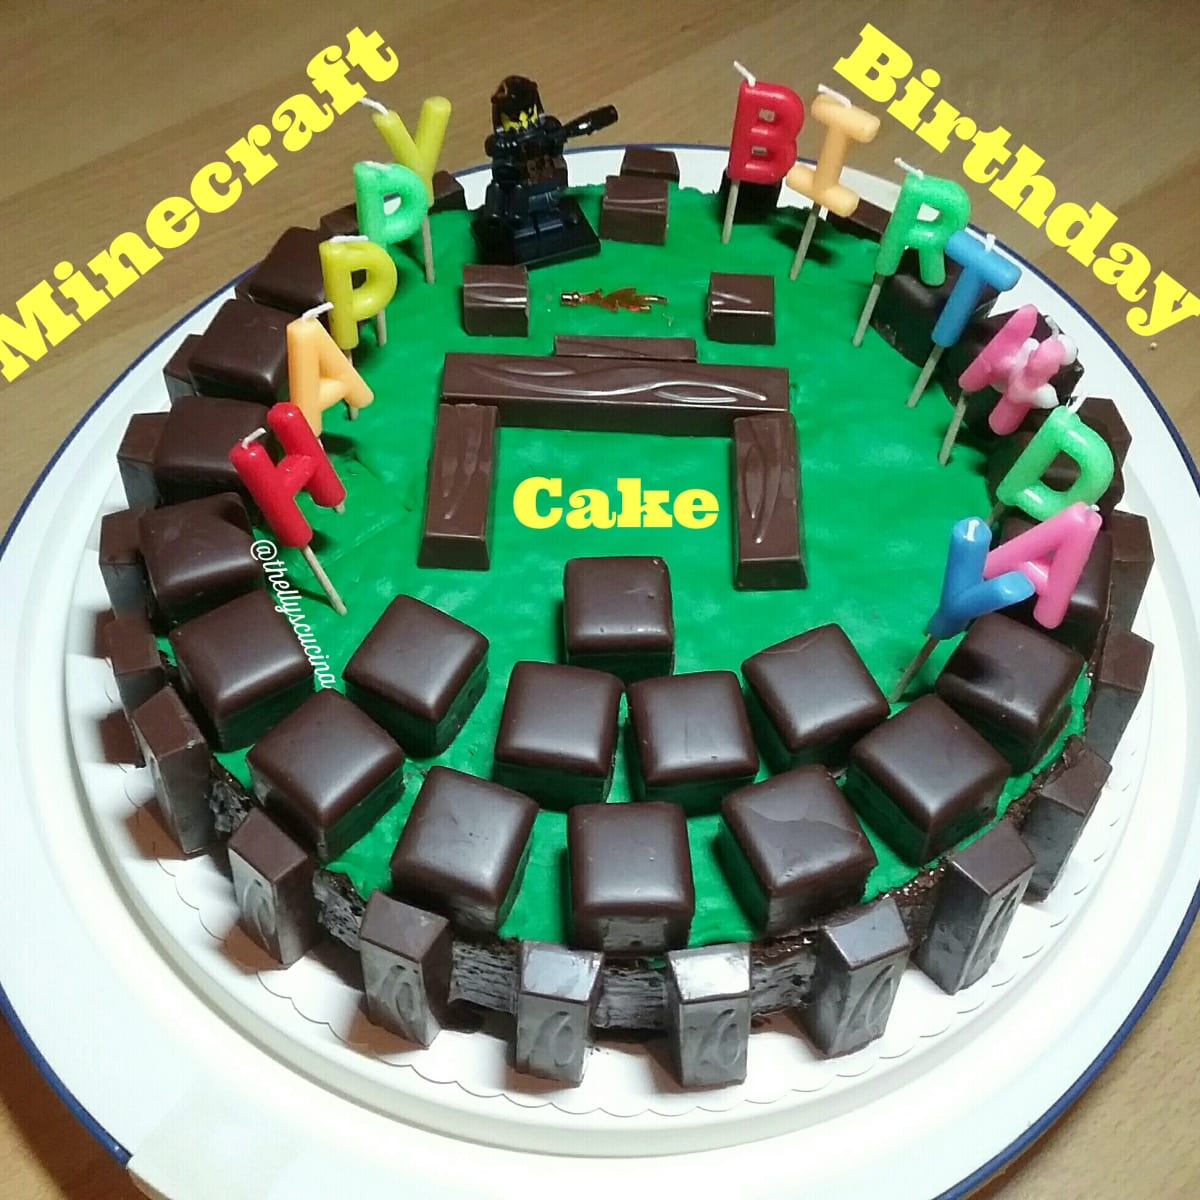 How To Make A Minecraft Birthday Cake Delishably Food And Drink